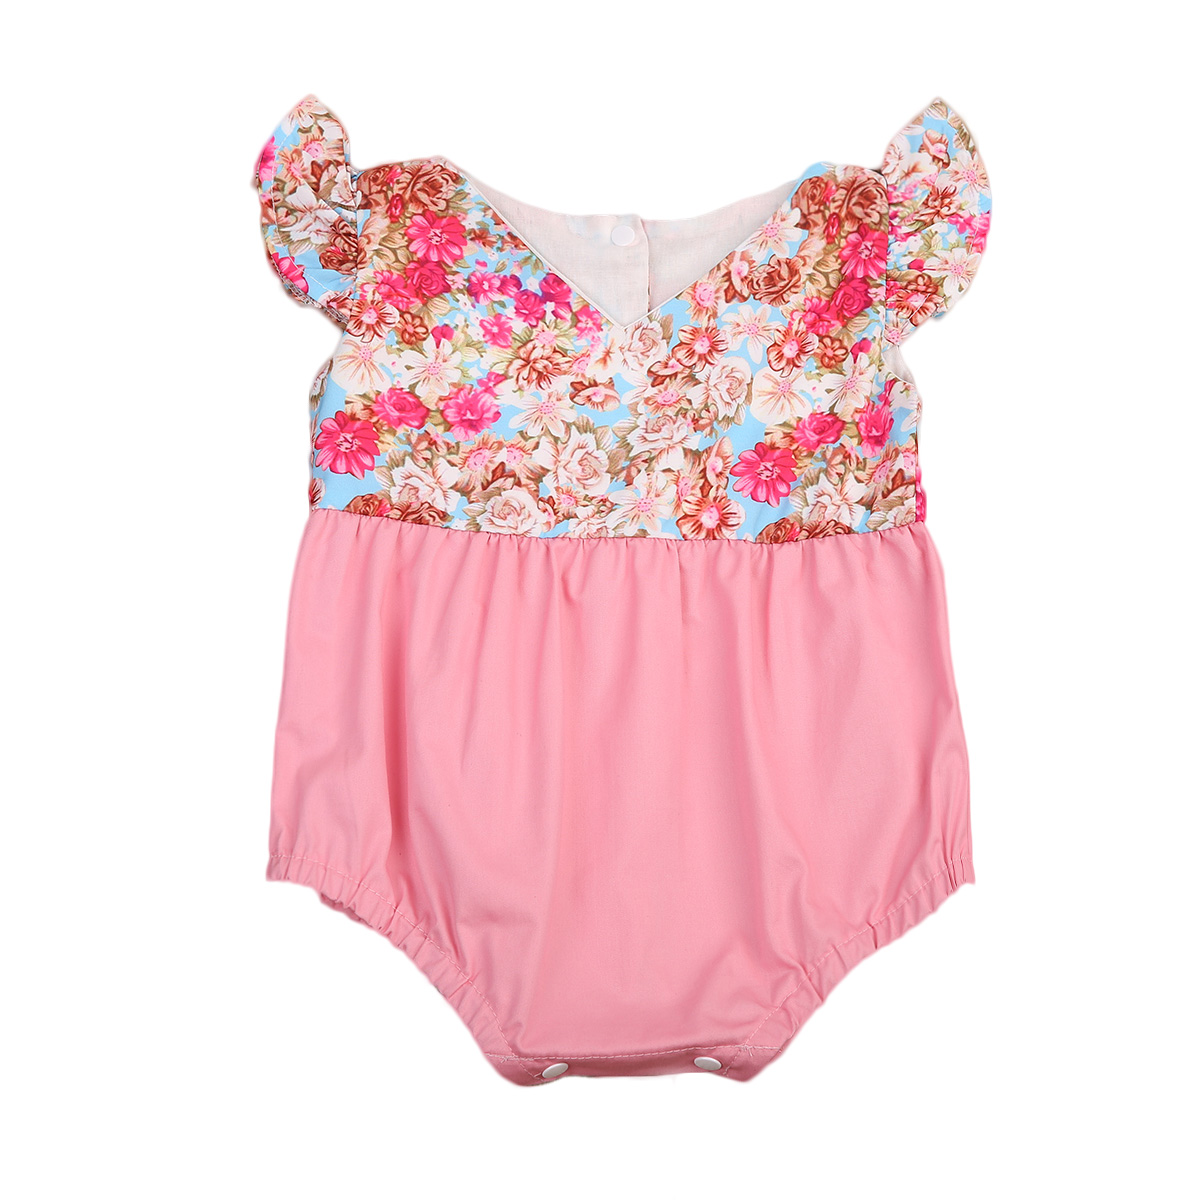 Baby Girl Rompers Outfit Clothes Sunsuit Outfits Newborn Infant Floral Jumpsuit